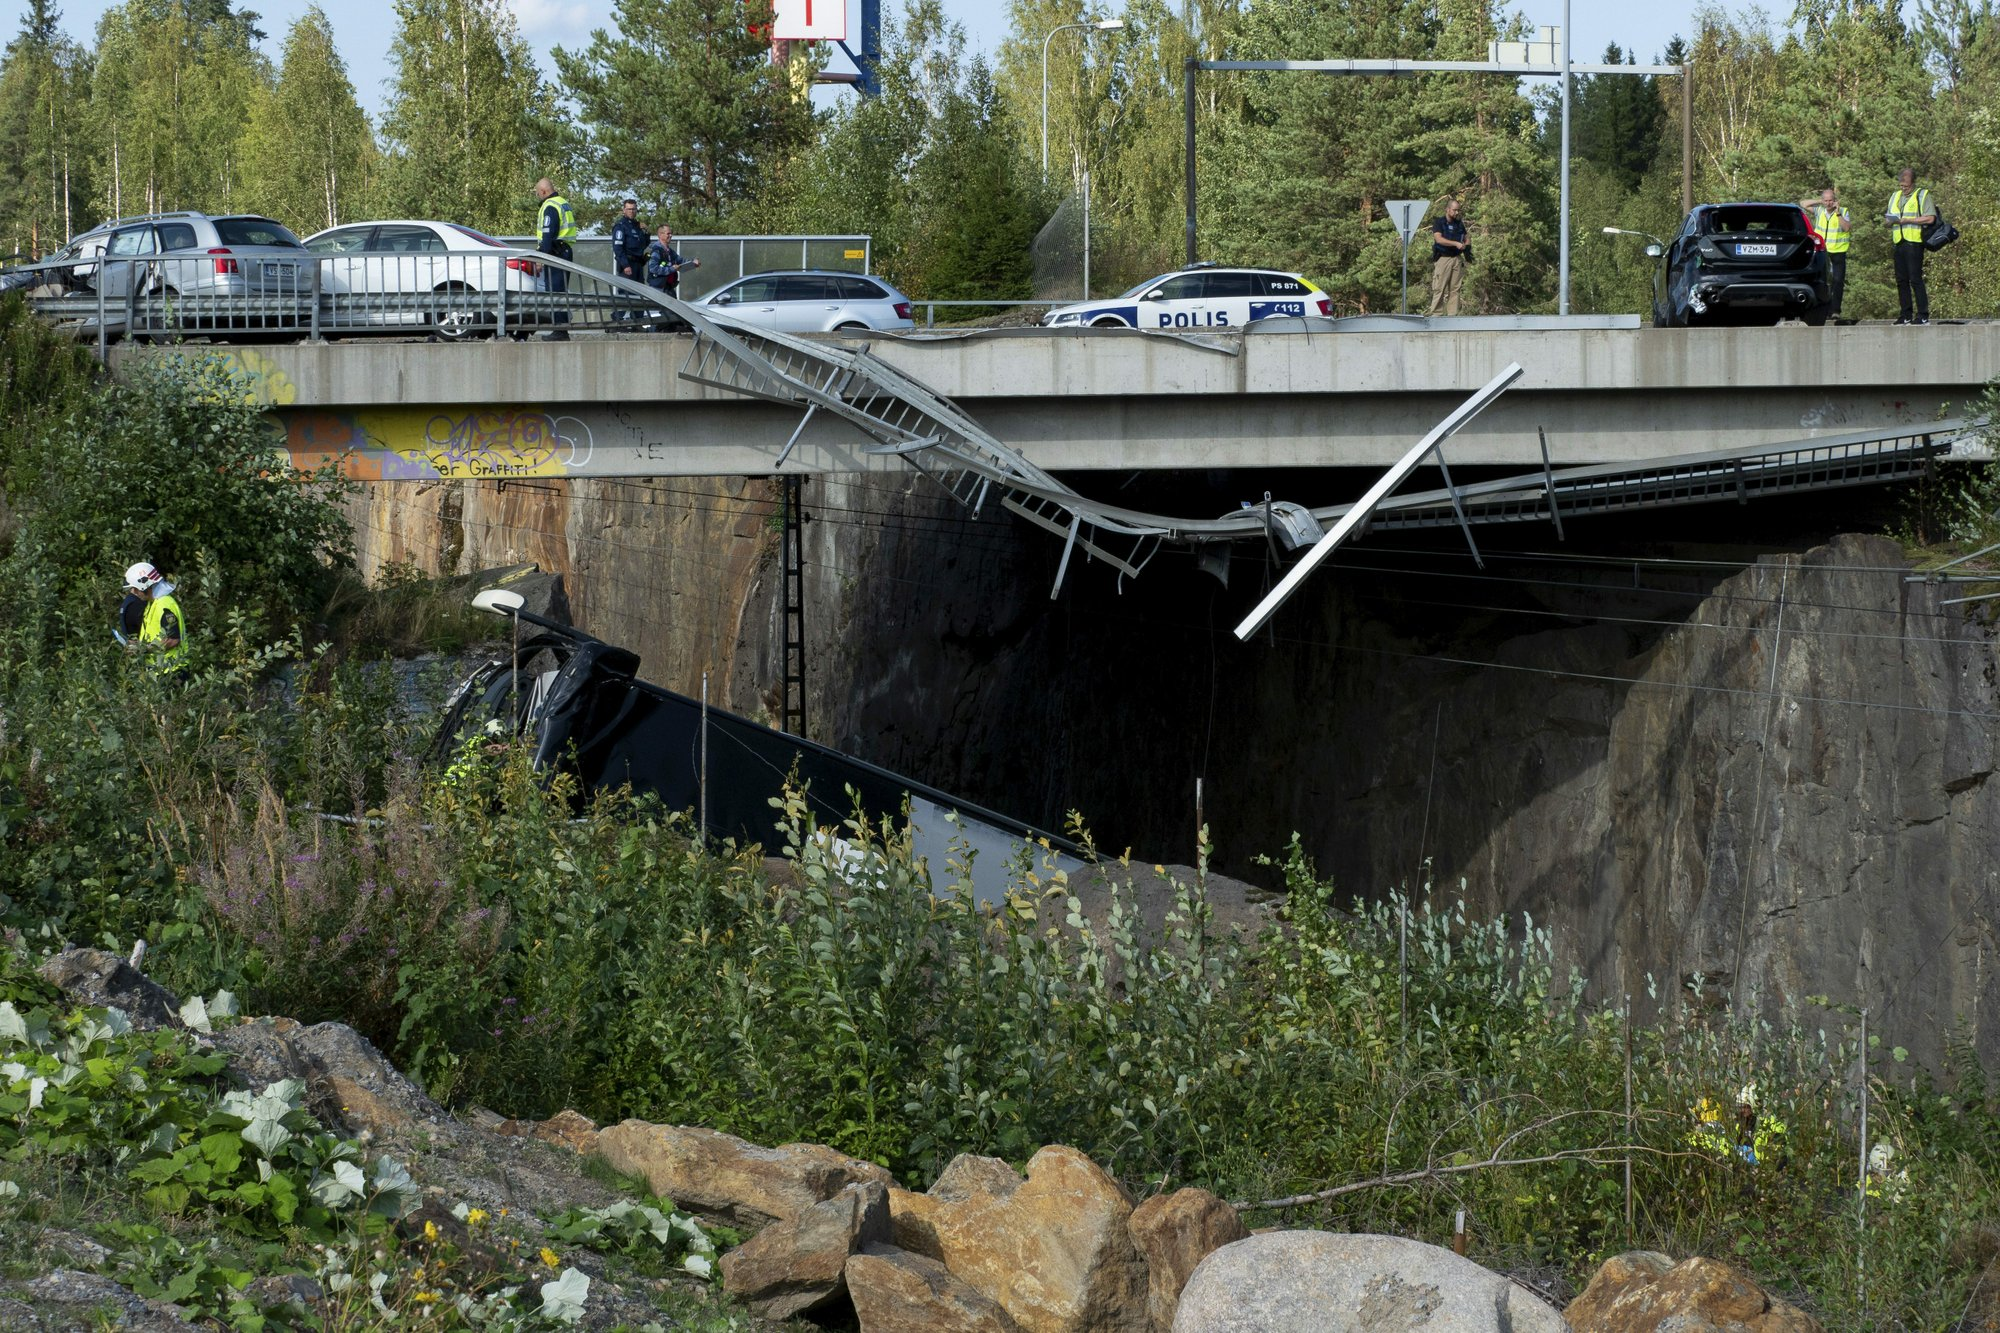 4 Killed When Bus Plunges Onto Train Tracks In Finland